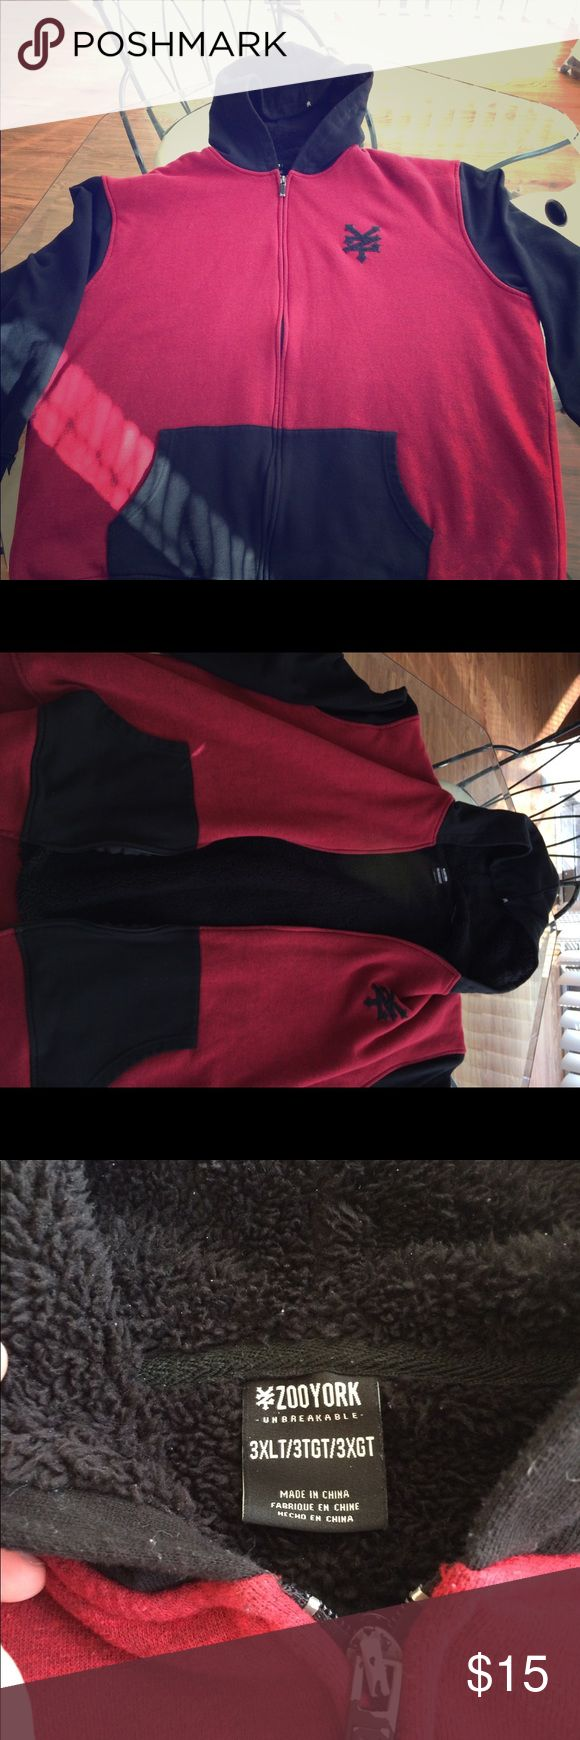 Zoo York Big n Tall Hoodie Zoo York 3XL Red and Black Hoodie with Black Fur Interior Great Condition - Very Well Kept Zoo York Sweaters Zip Up